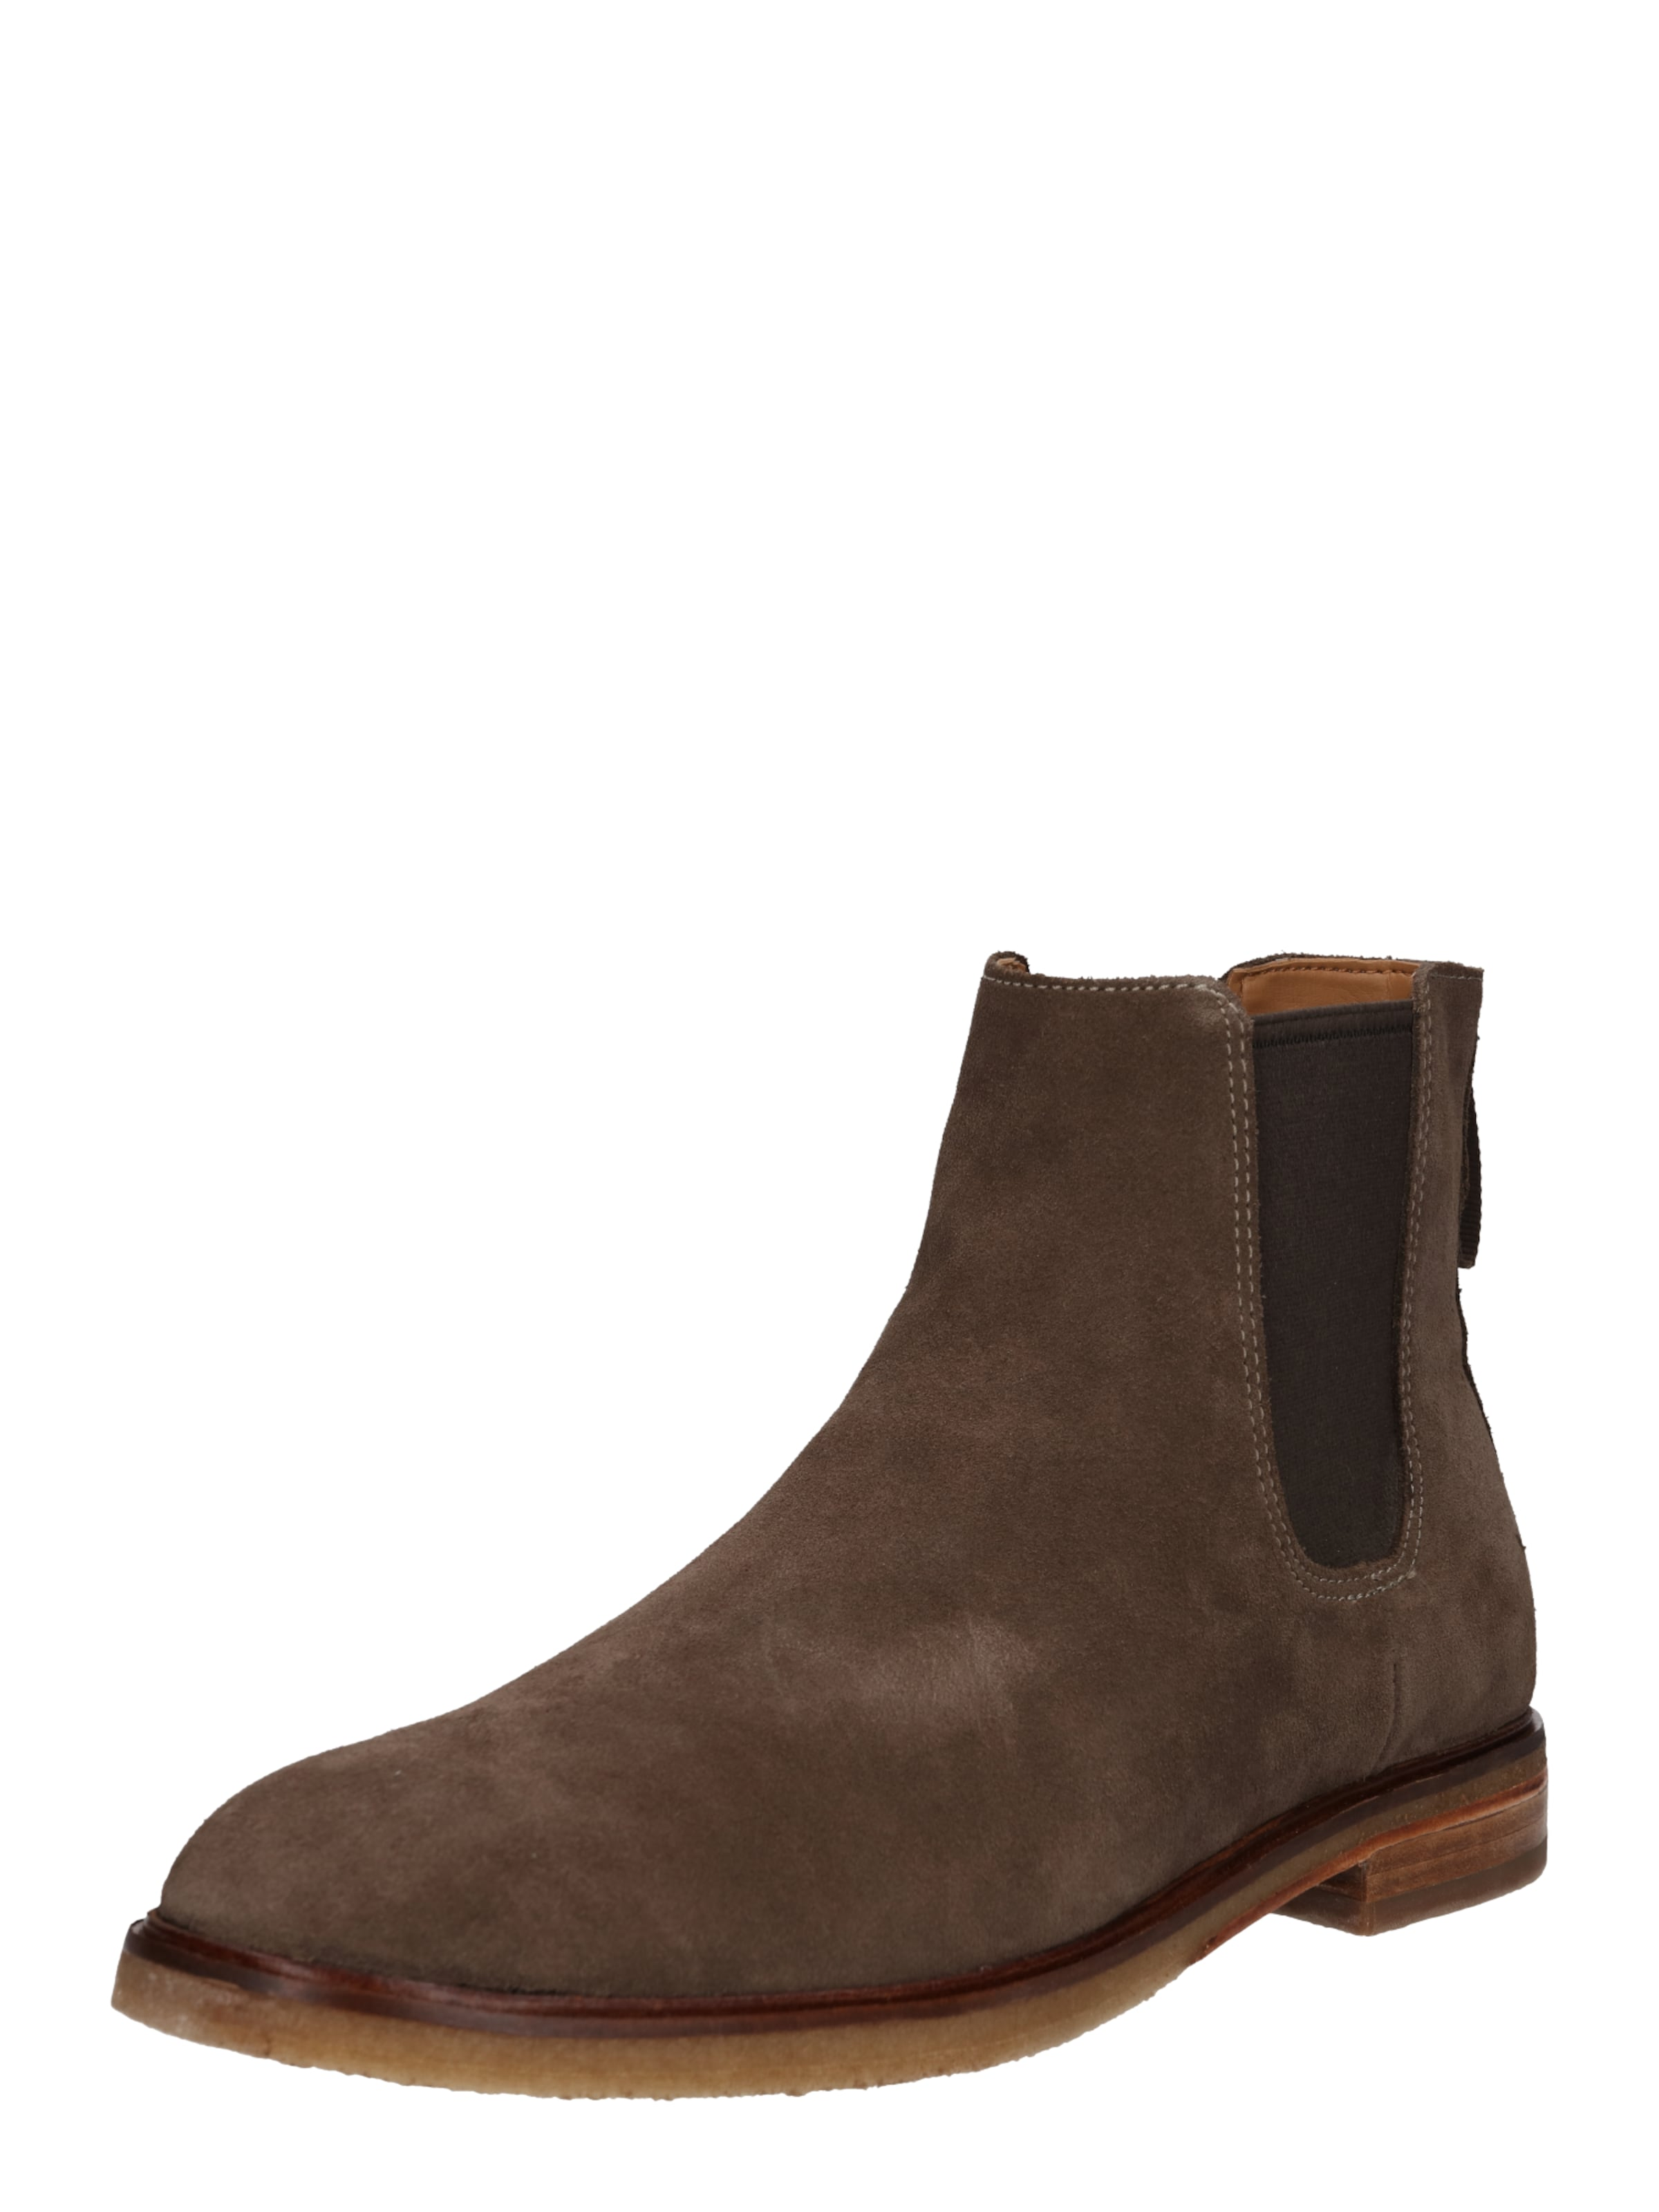 CLARKS Chelsea Boots Clarkdale Gobi Hohe Qualität